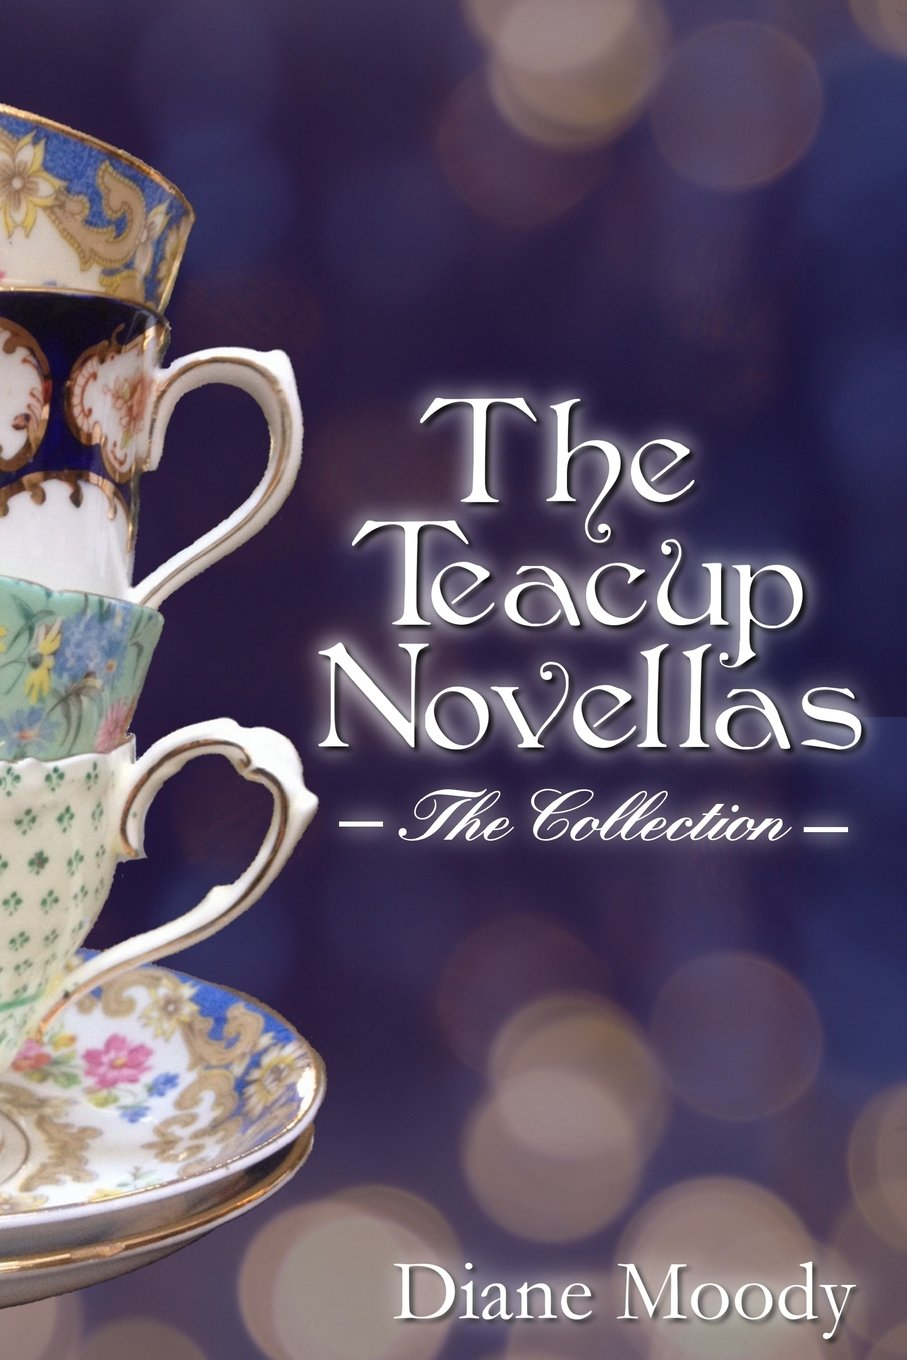 Teacups Novellas Collection Diane Moody product image